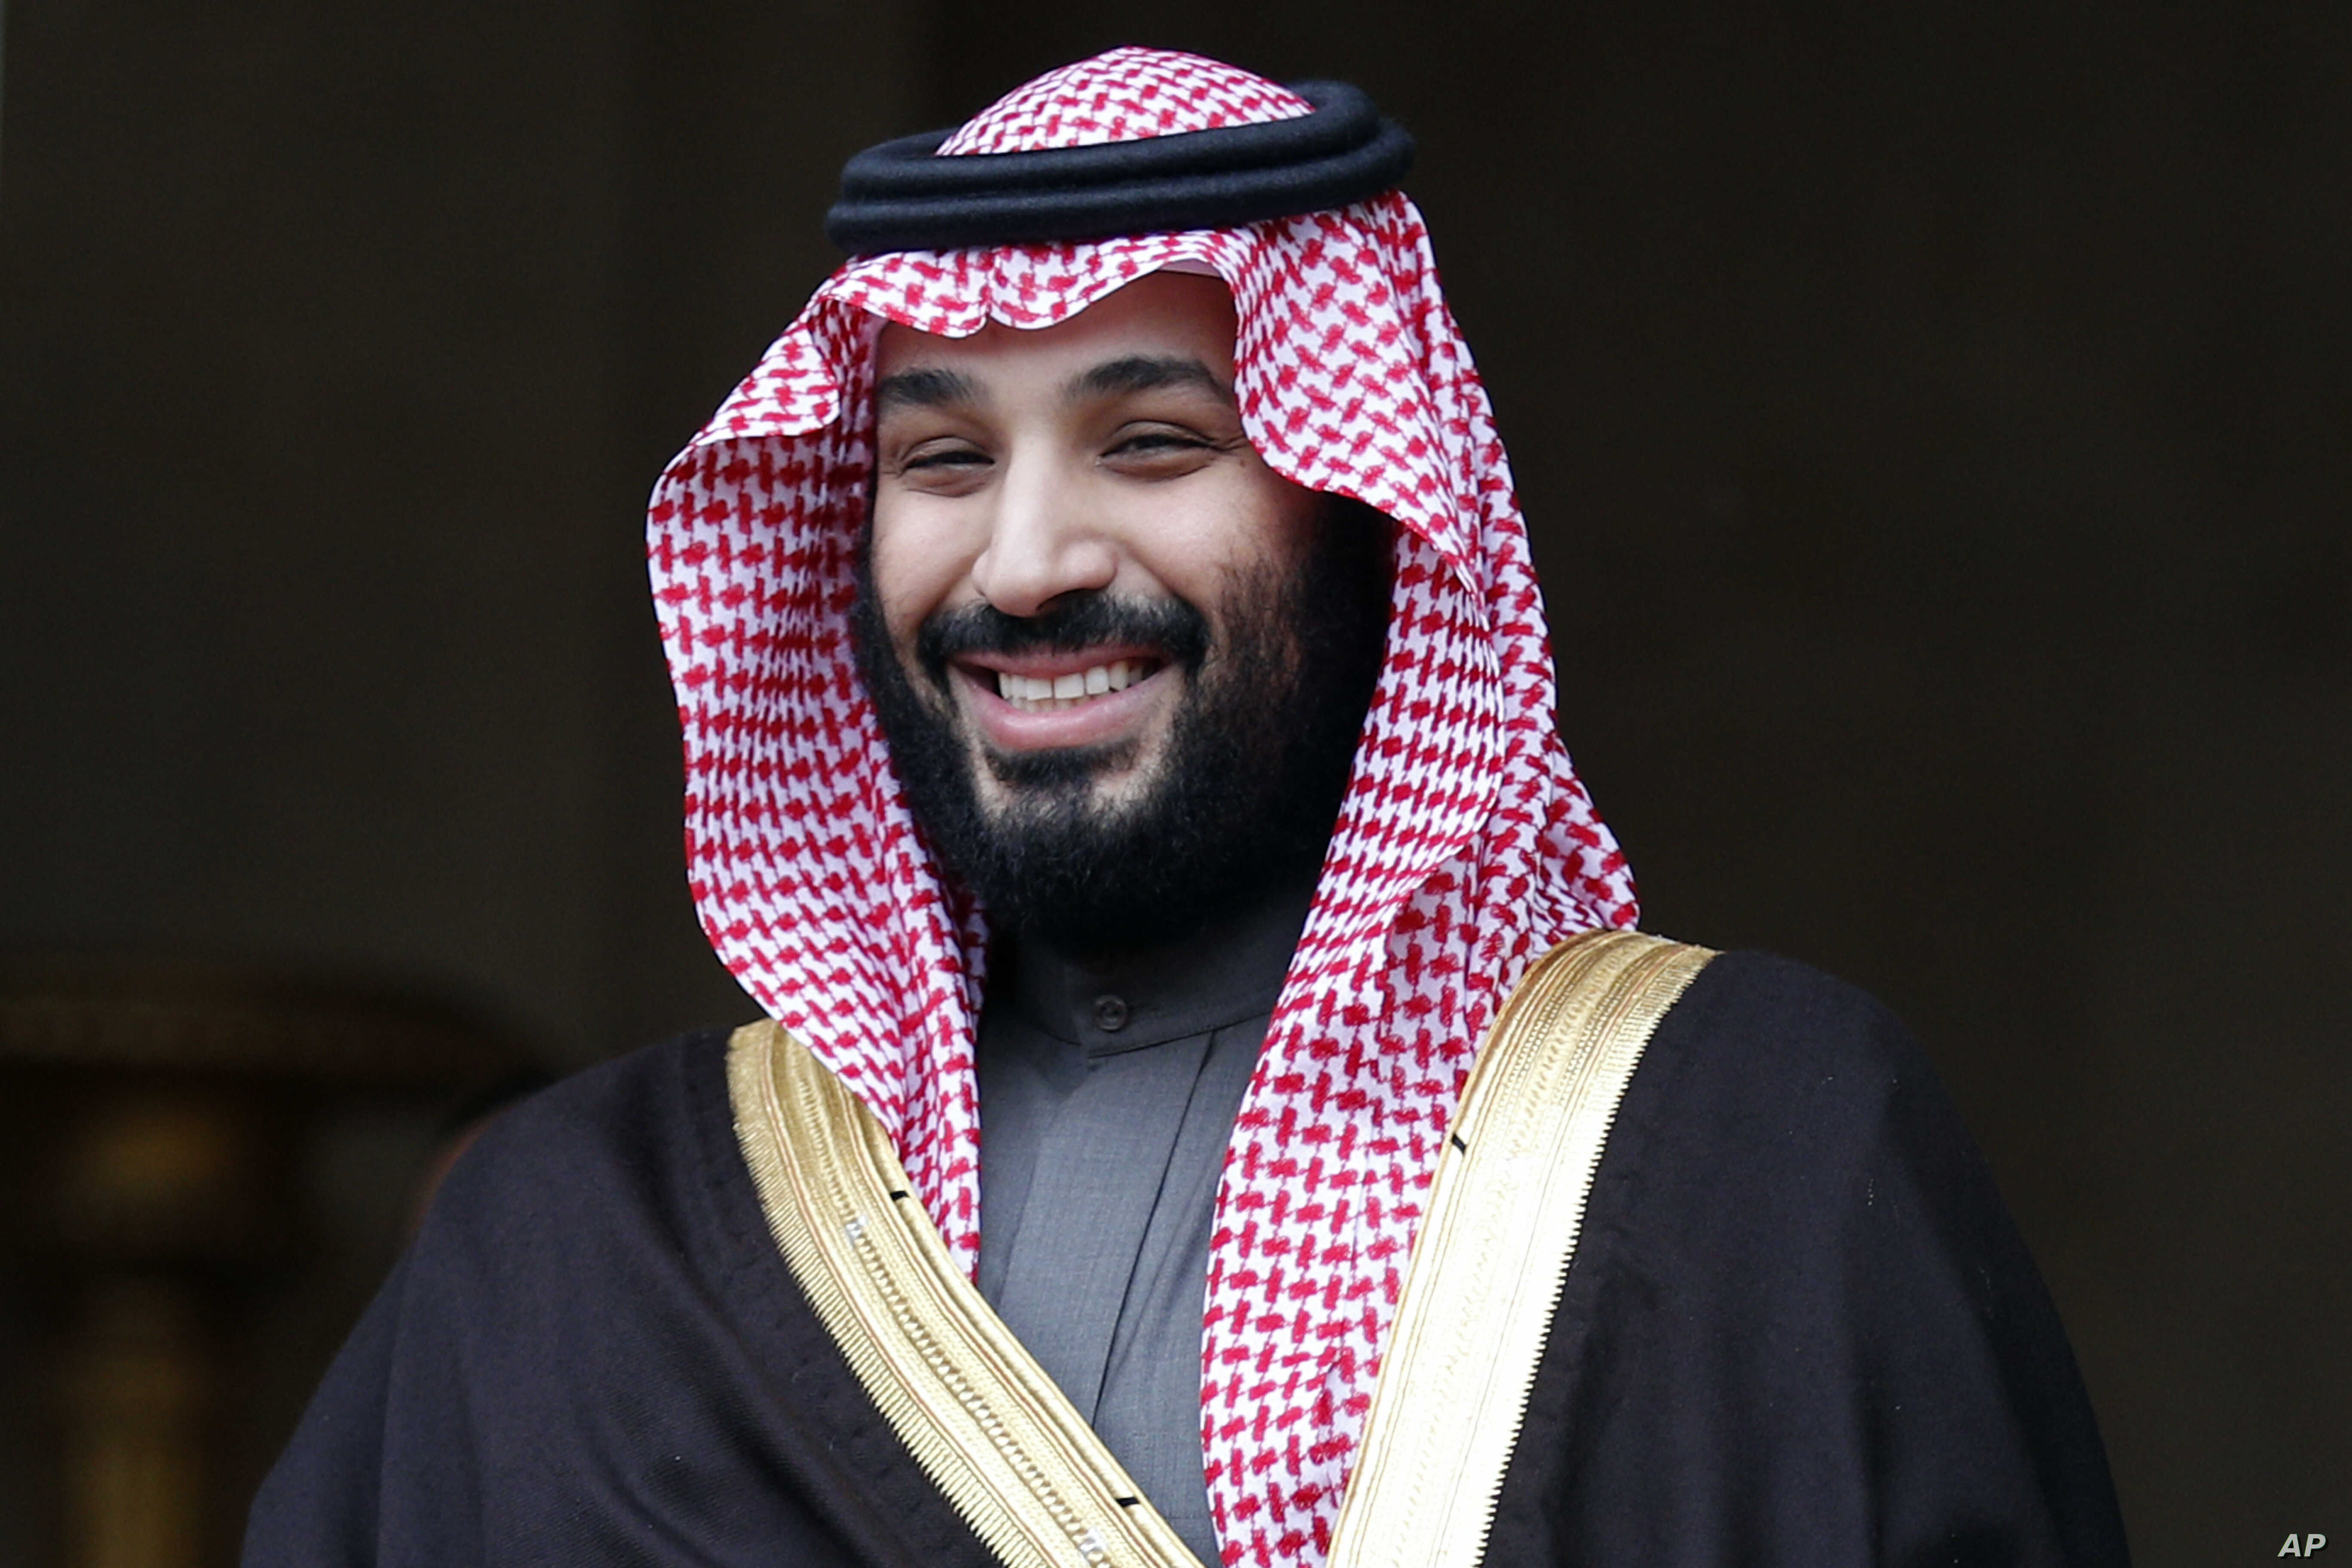 FILE- Saudi Crown Prince Mohammed bin Salman visits France, April 9, 2018. The disappearance of Saudi journalist Jamal Khashoggi, Oct. 2, 2018, in Turkey, peels away a carefully cultivated reformist veneer promoted about the Saudi Crown Prince, inste...